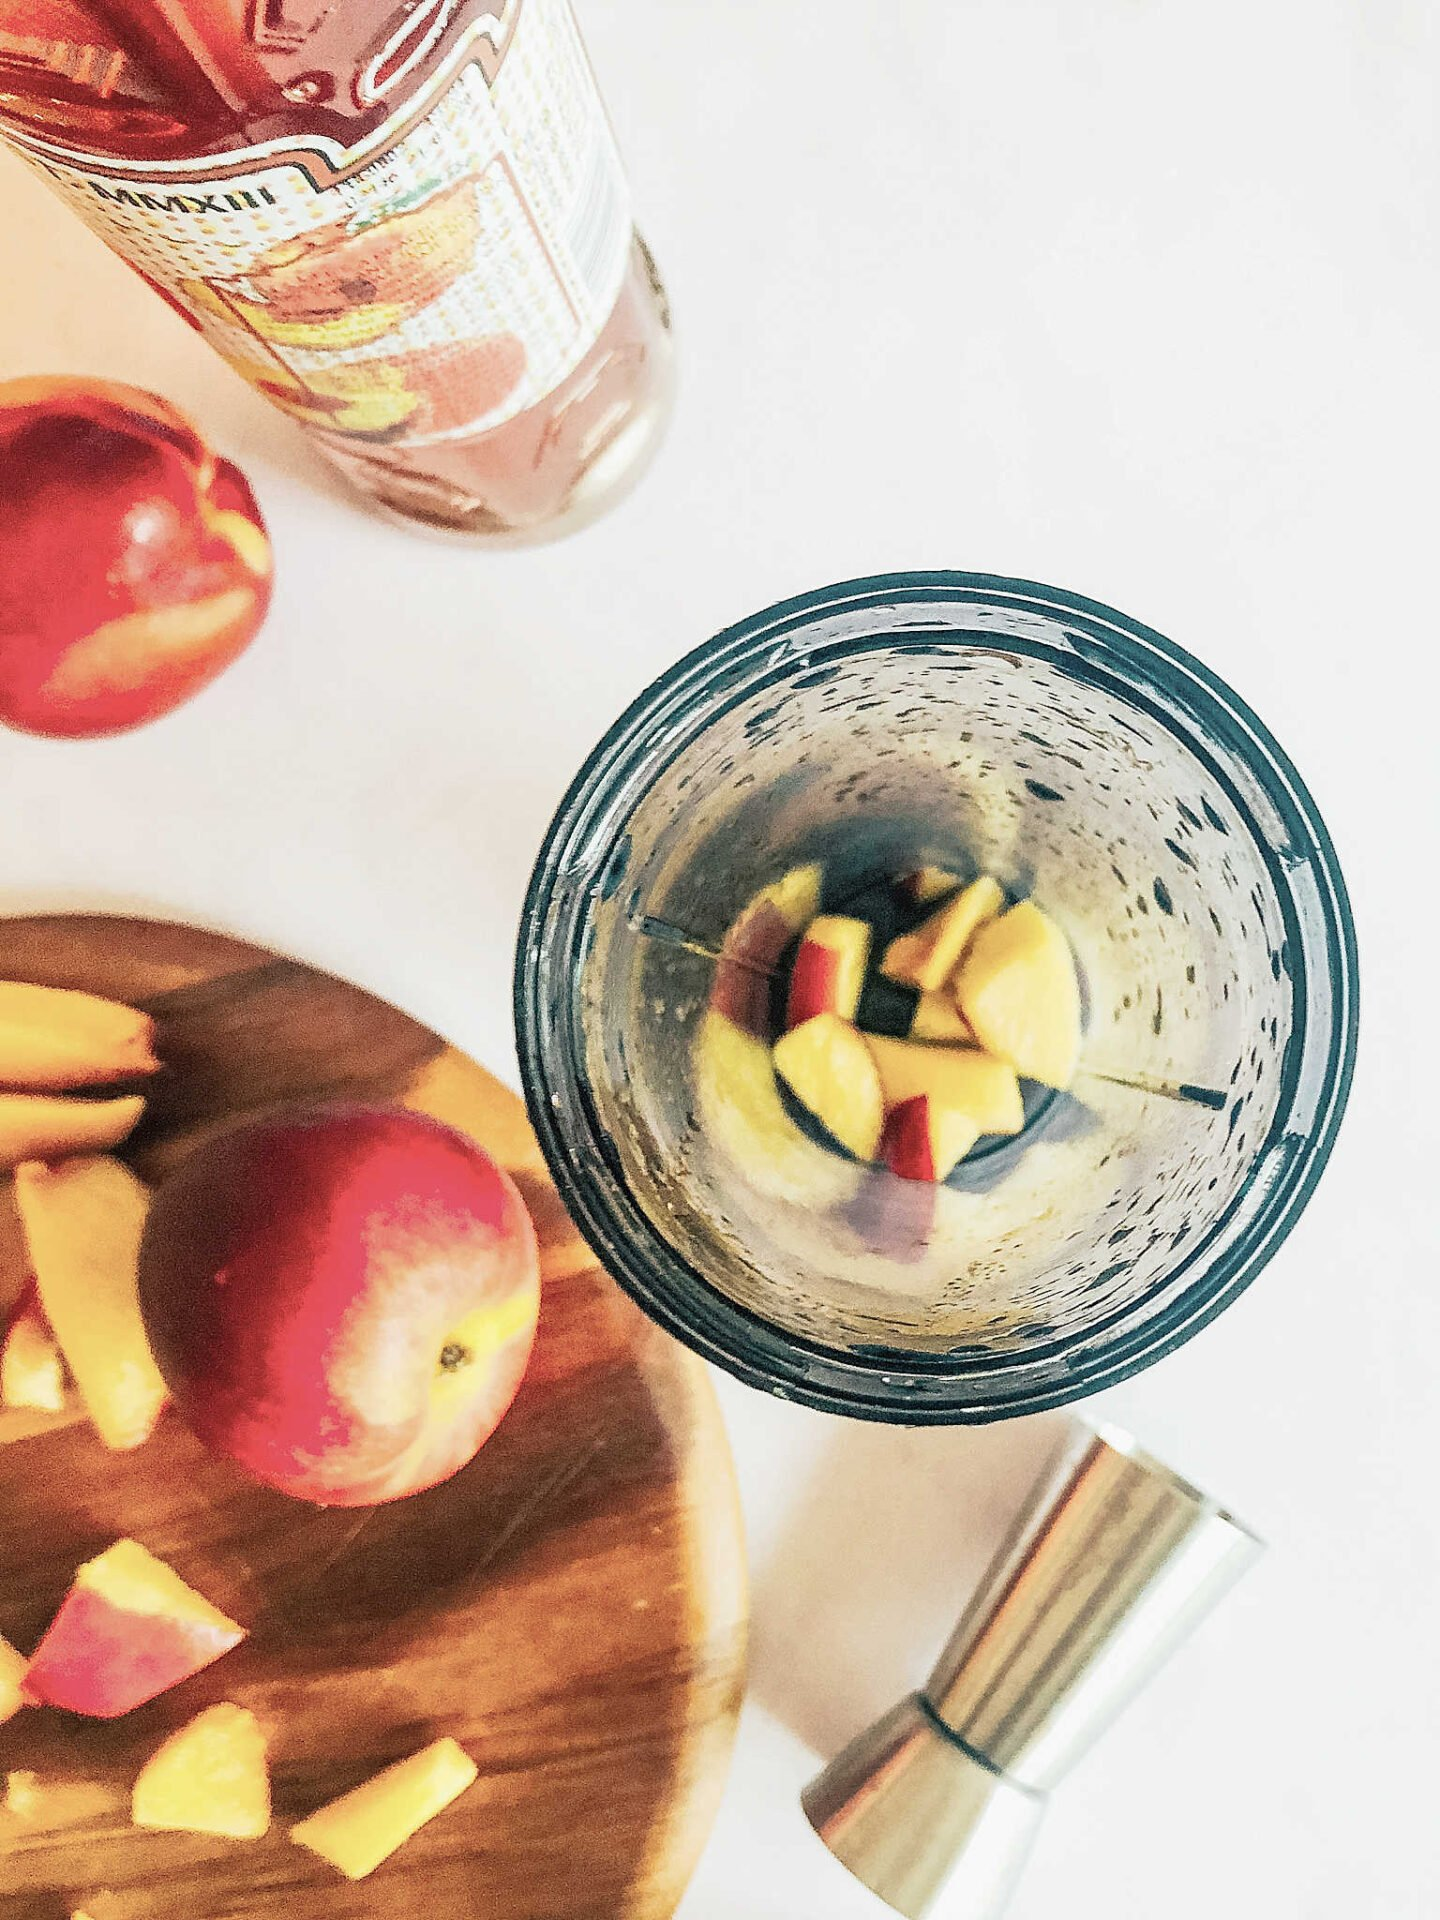 chop 1 peach into small chinks and place in a blender